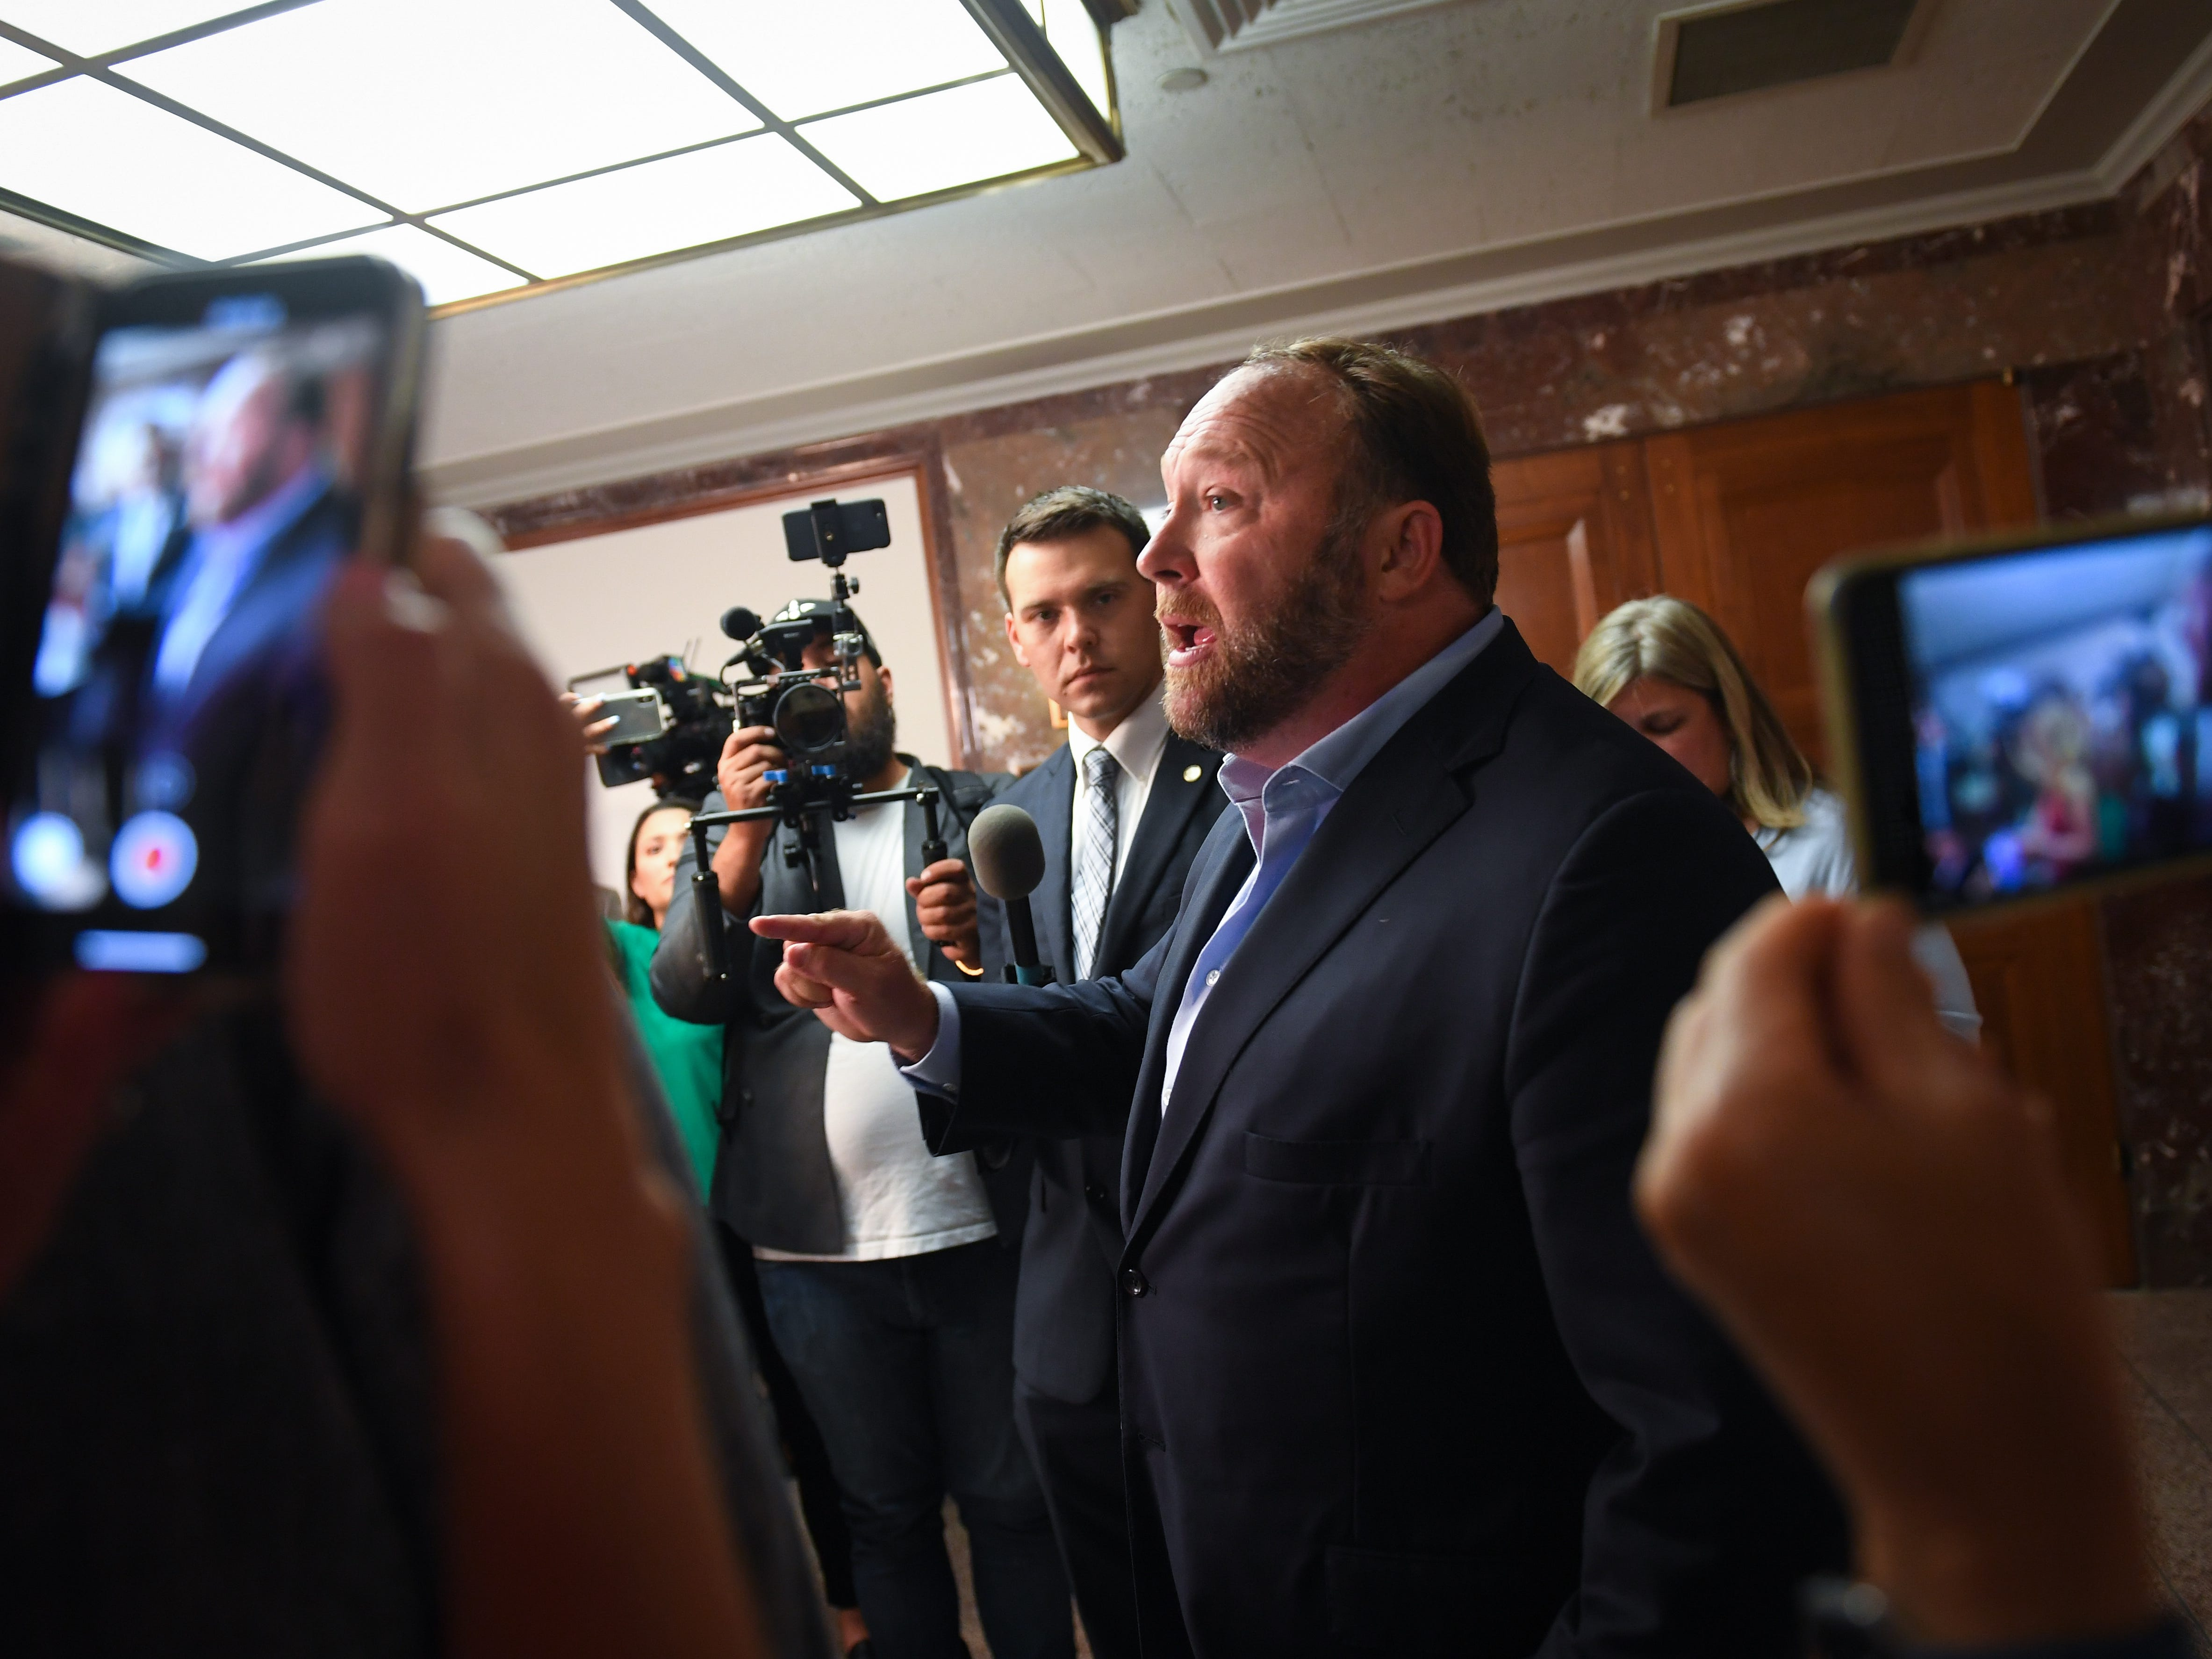 9/5/18 9:48:18 AM -- Washington, DC, U.S.A  -- Radio show host Alex Jones passionately speaking to the media just outside of the committee room doors where Sheryl Sandberg, chief operating officer of Facebook Inc., and Jack Dorsey, chief executive officer of Twitter Inc., testify before the Senate Select Committee on Intelligence during a hearing on Foreign Influence Operations' Use of Social Media Platforms on Sept. 5, 2018 in Washington.  --    Photo by Jack Gruber, USA TODAY Staff ORG XMIT:  JG 137441 Social Media Hea 9/5/ (Via OlyDrop)